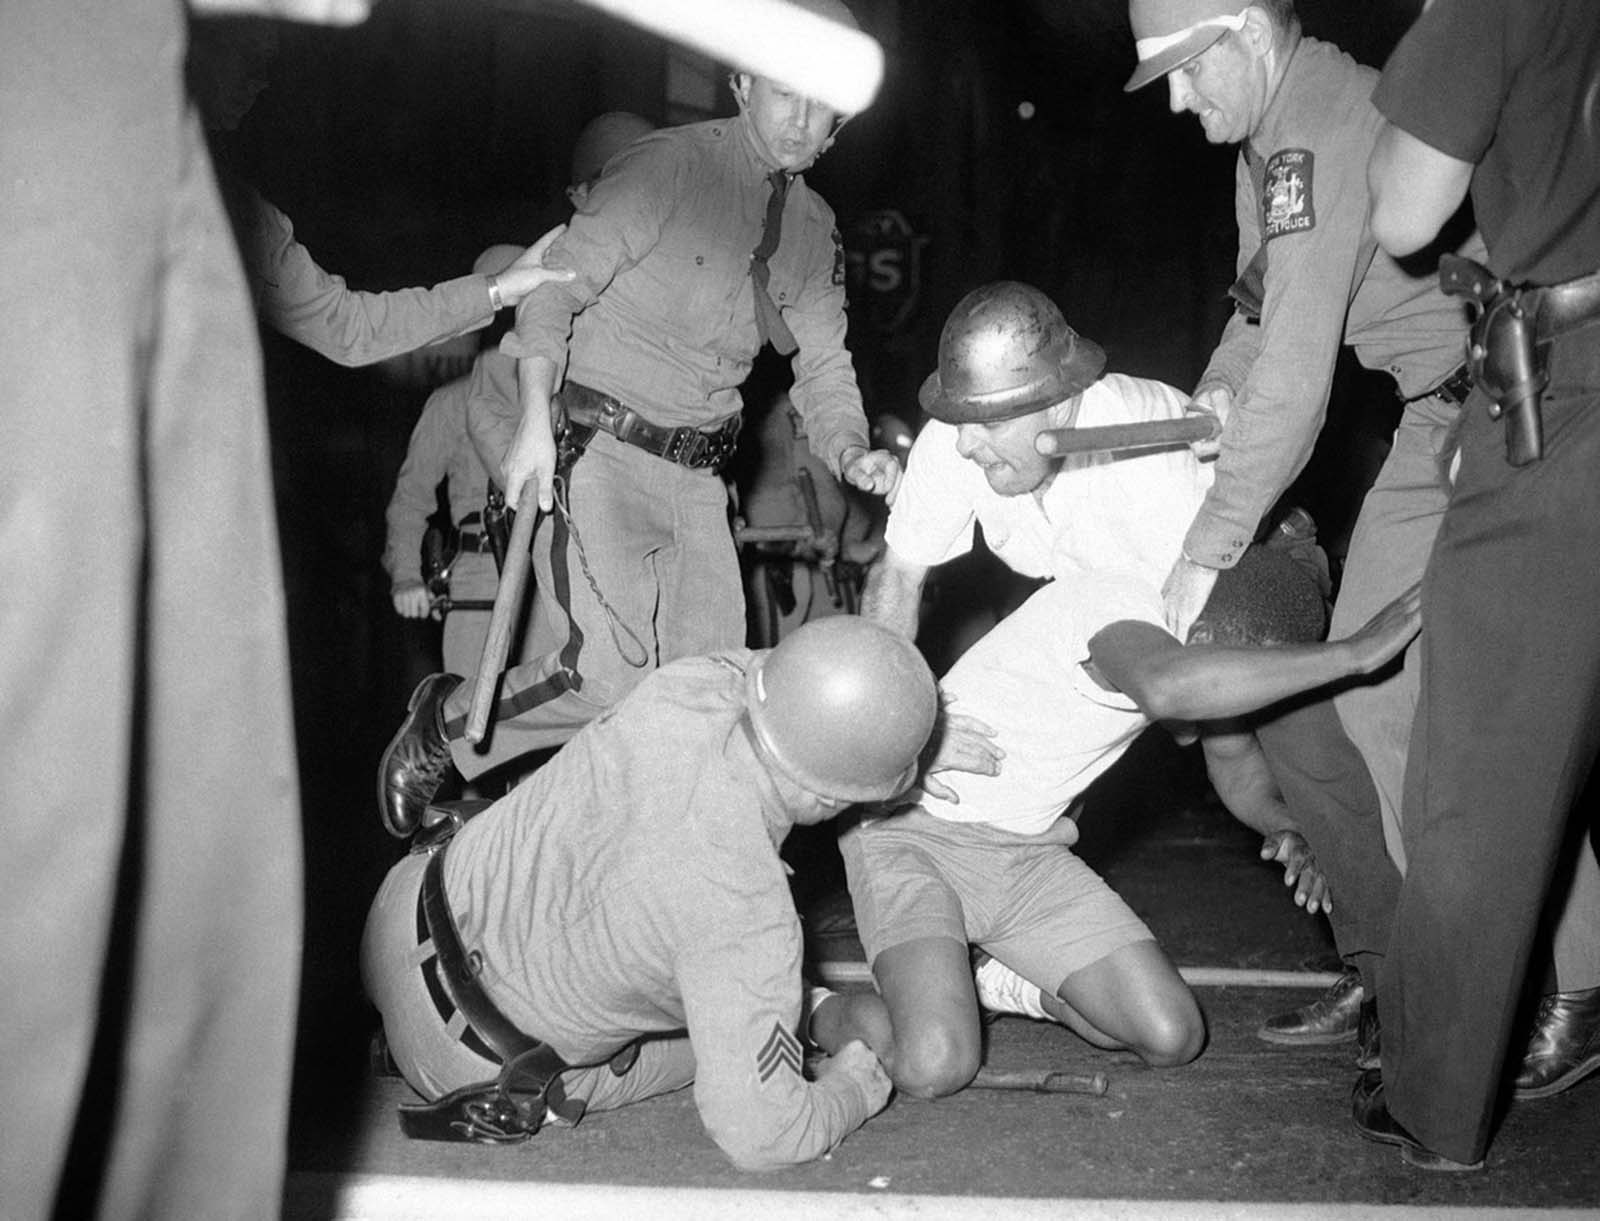 A police officer falls to pavement as he struggles to apprehend a man in Rochester, New York, July 25, 1964.